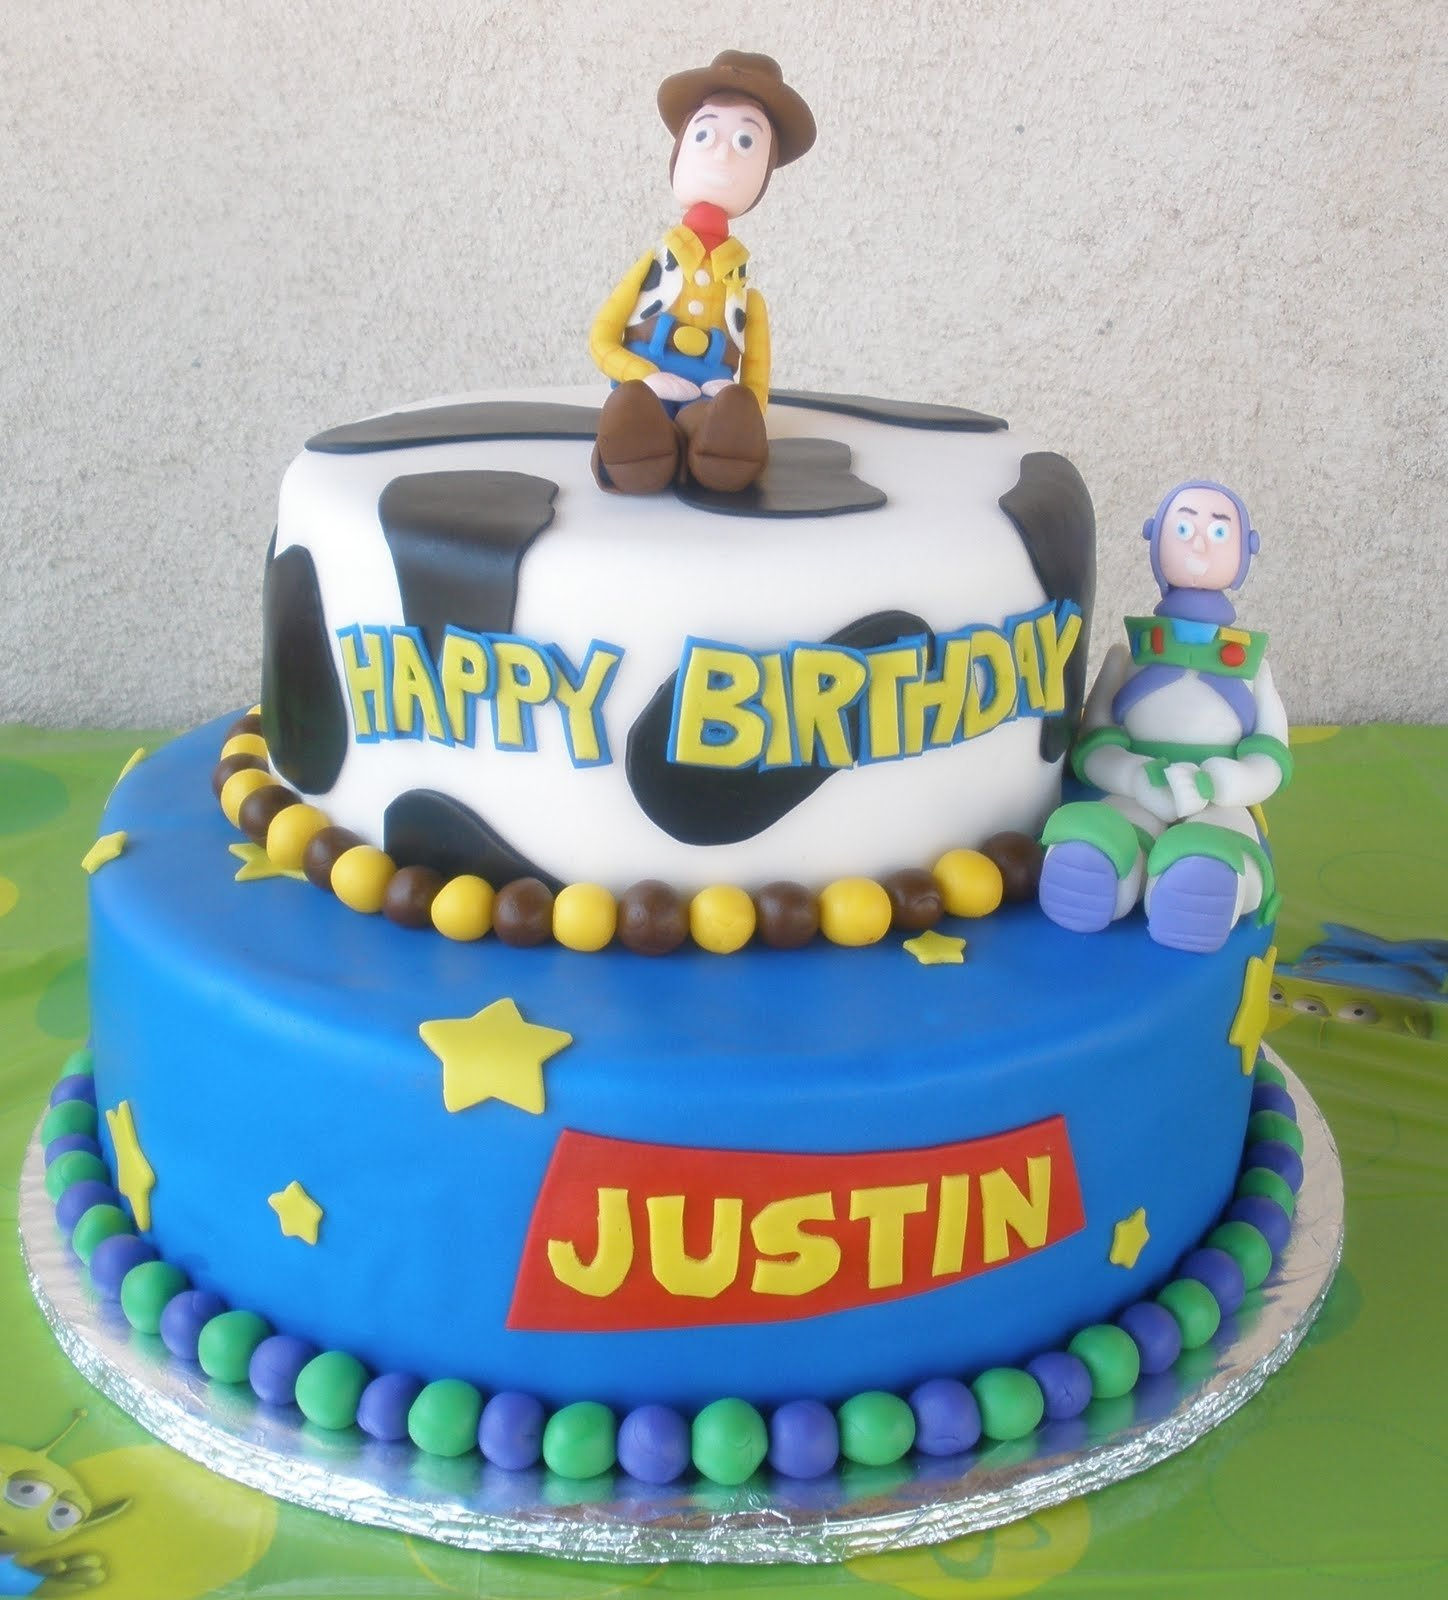 10 Spectacular Toy Story Birthday Cake Ideas toy story birthday cake liviroom decors toy story cakes for